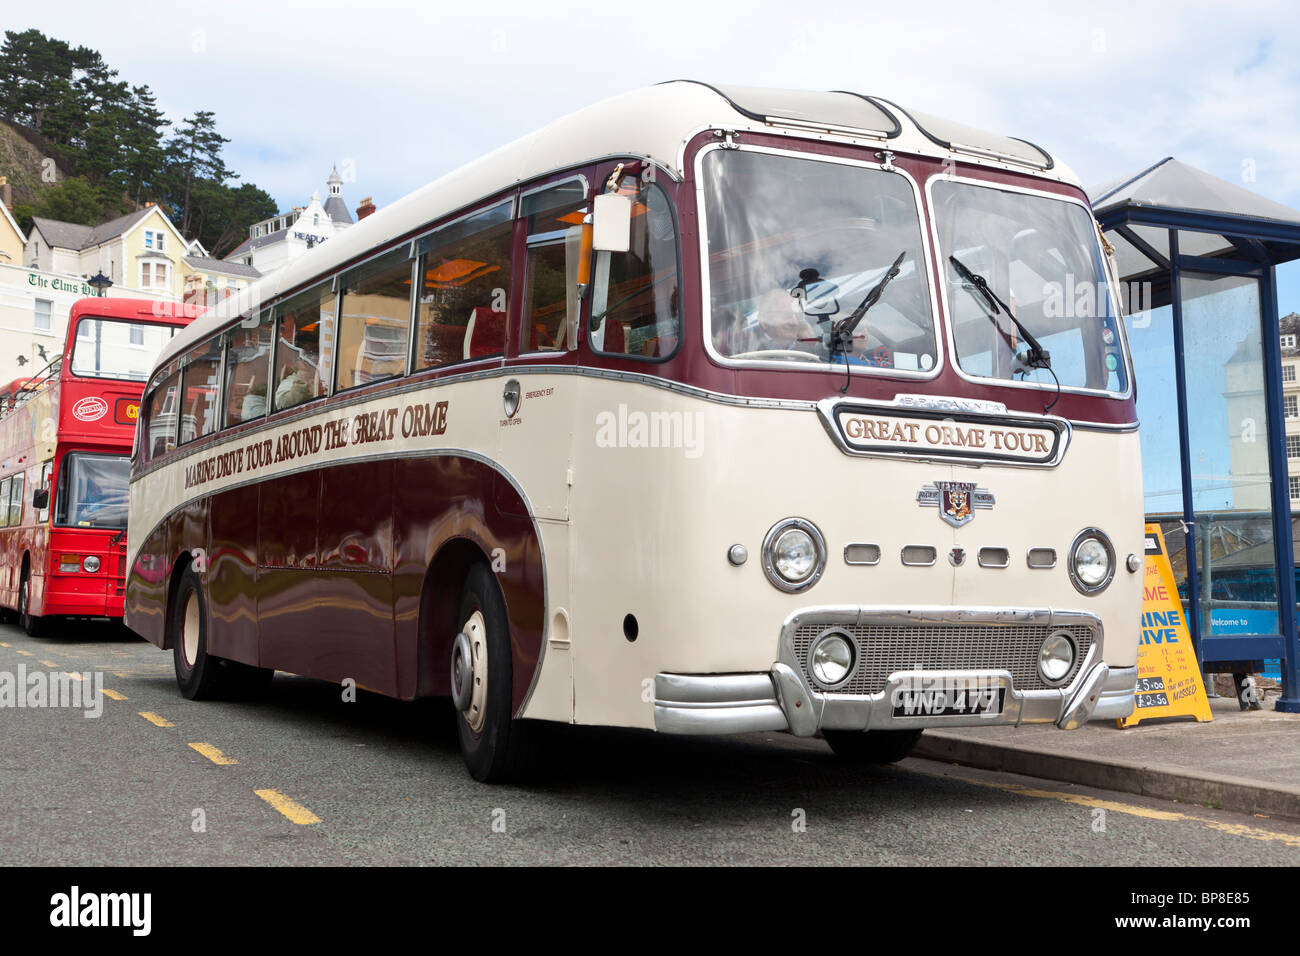 Great Orme Tour, 1950er Jahre Leyland Bus, Llandudno, North Wales Stockbild